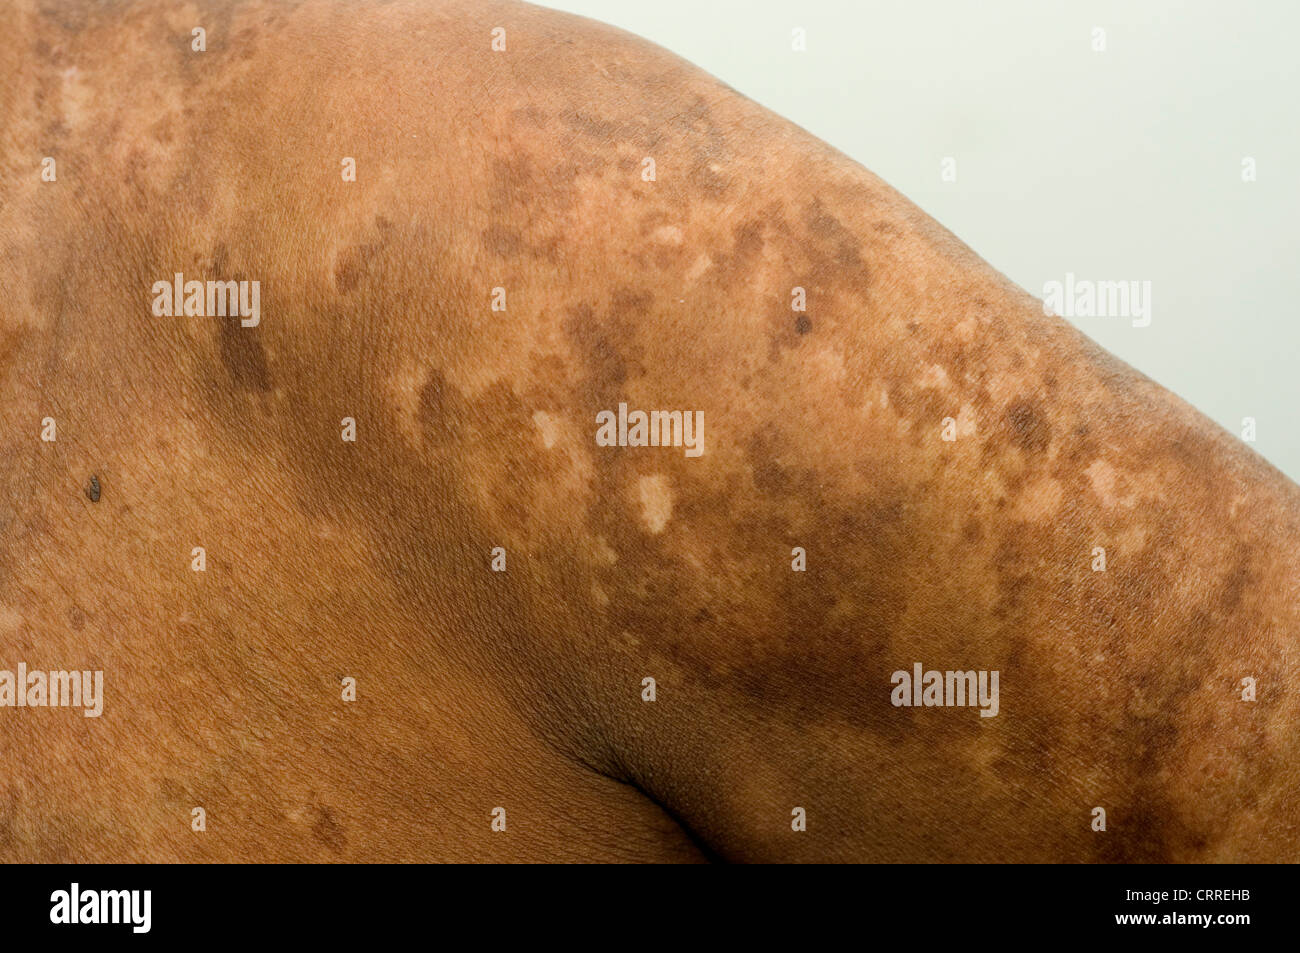 A patient with a fungal infection of the skin. - Stock Image